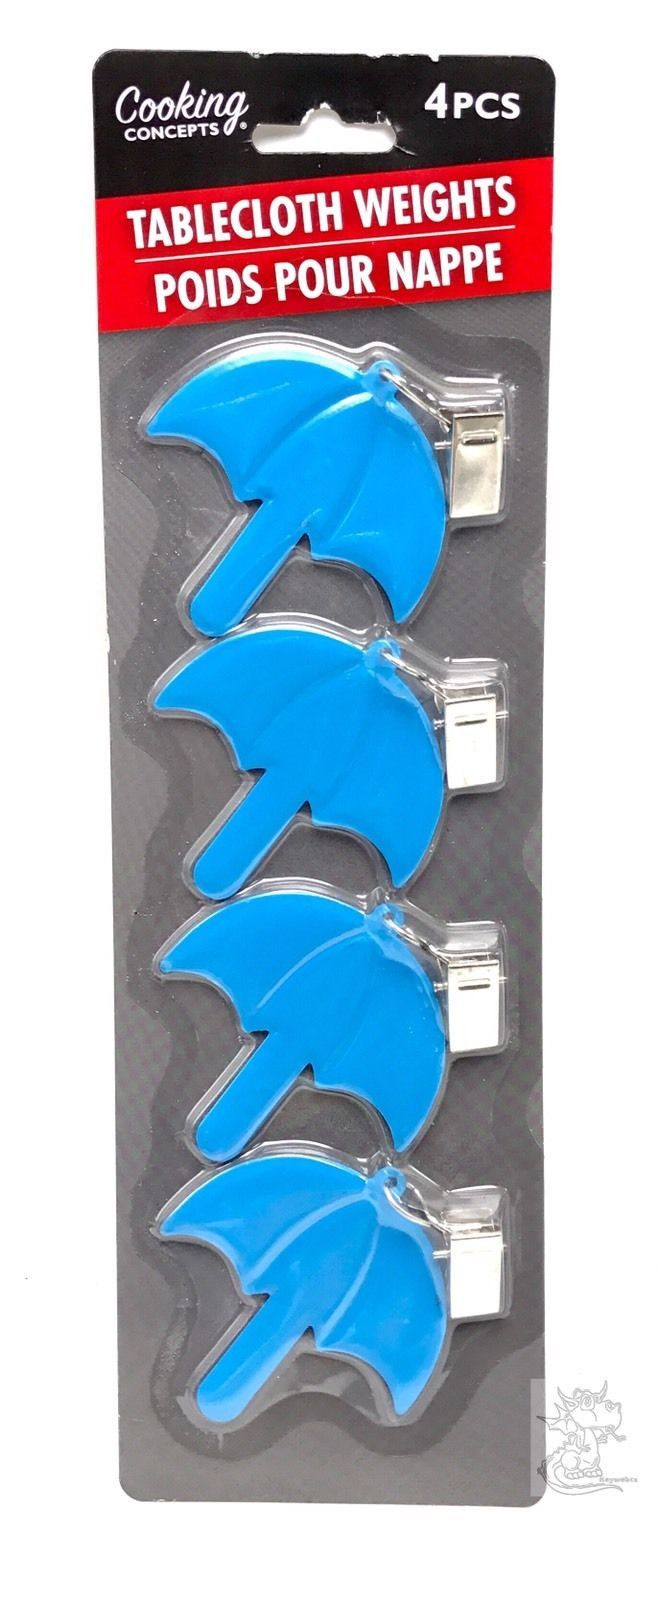 #keywebco Blue Umbrella Met... found at  http://keywebco.myshopify.com/products/blue-umbrella-metal-tablecloth-weights-with-clips-4pc-set-new?utm_campaign=social_autopilot&utm_source=pin&utm_medium=pin